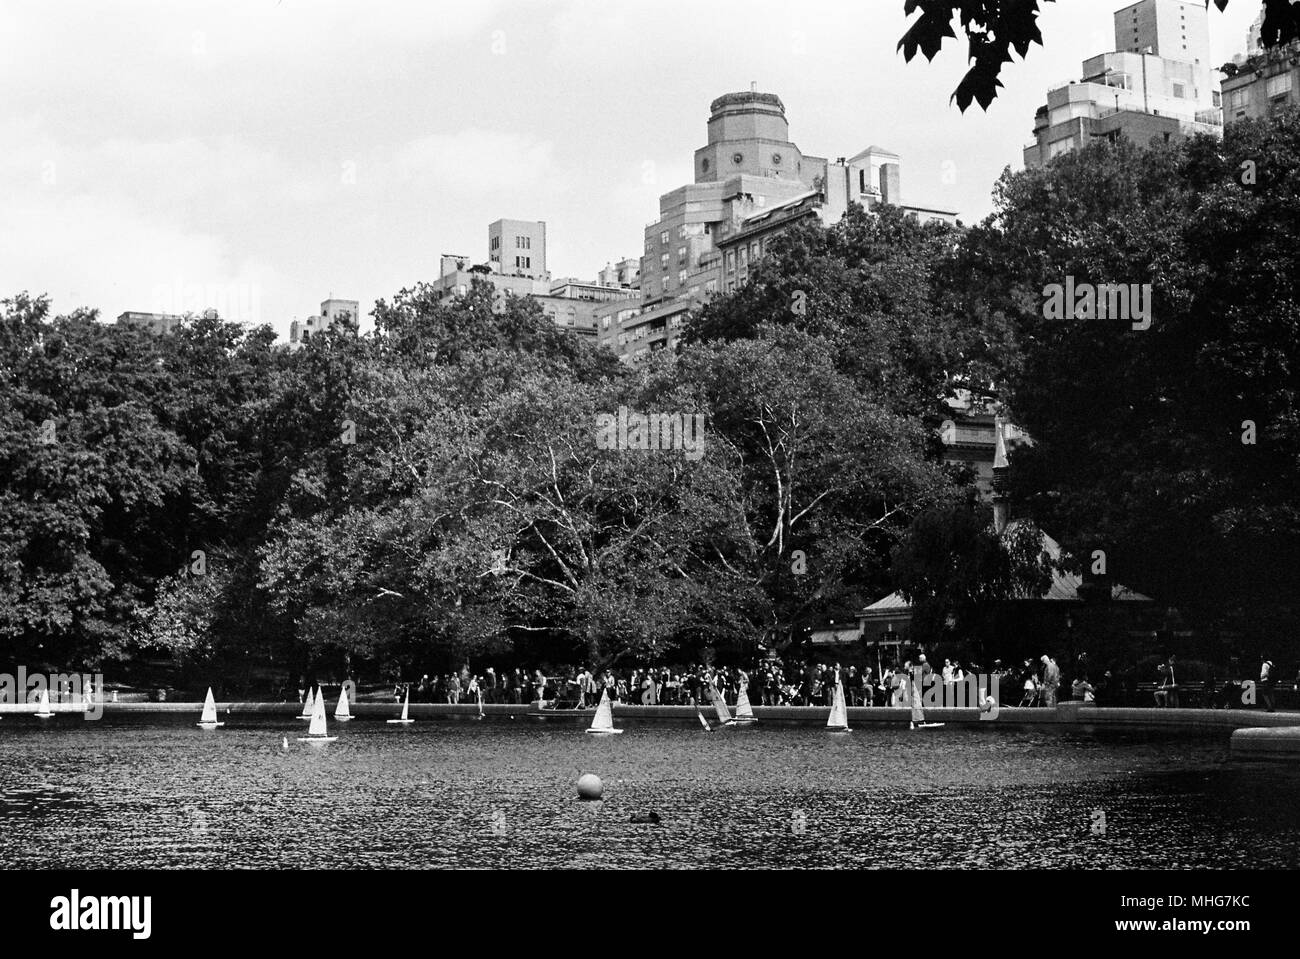 Central Park Model Boat Sailing, Conservatory Water, Central Park, New York City, United States of America. - Stock Image